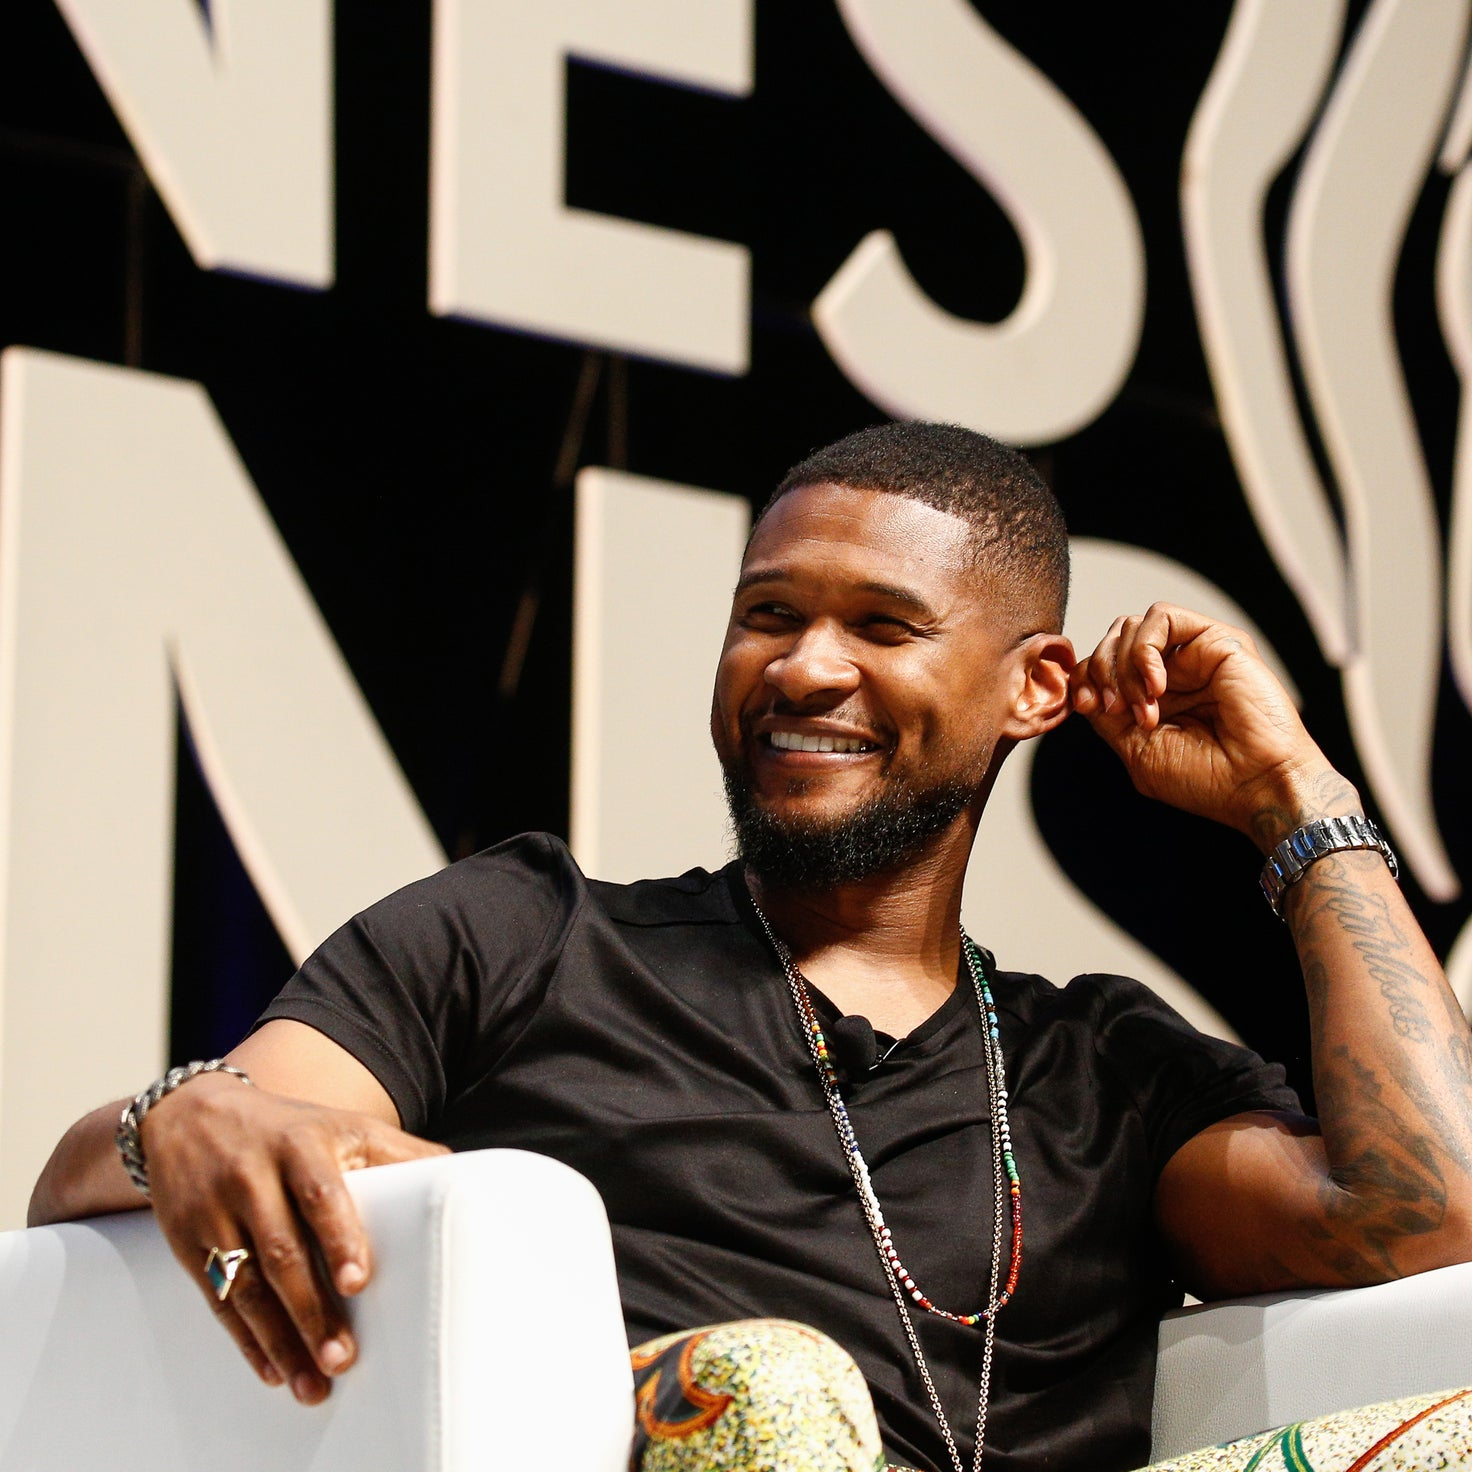 Usher is now Selling his 'Don't Trump America' Shirt From the BET Awards